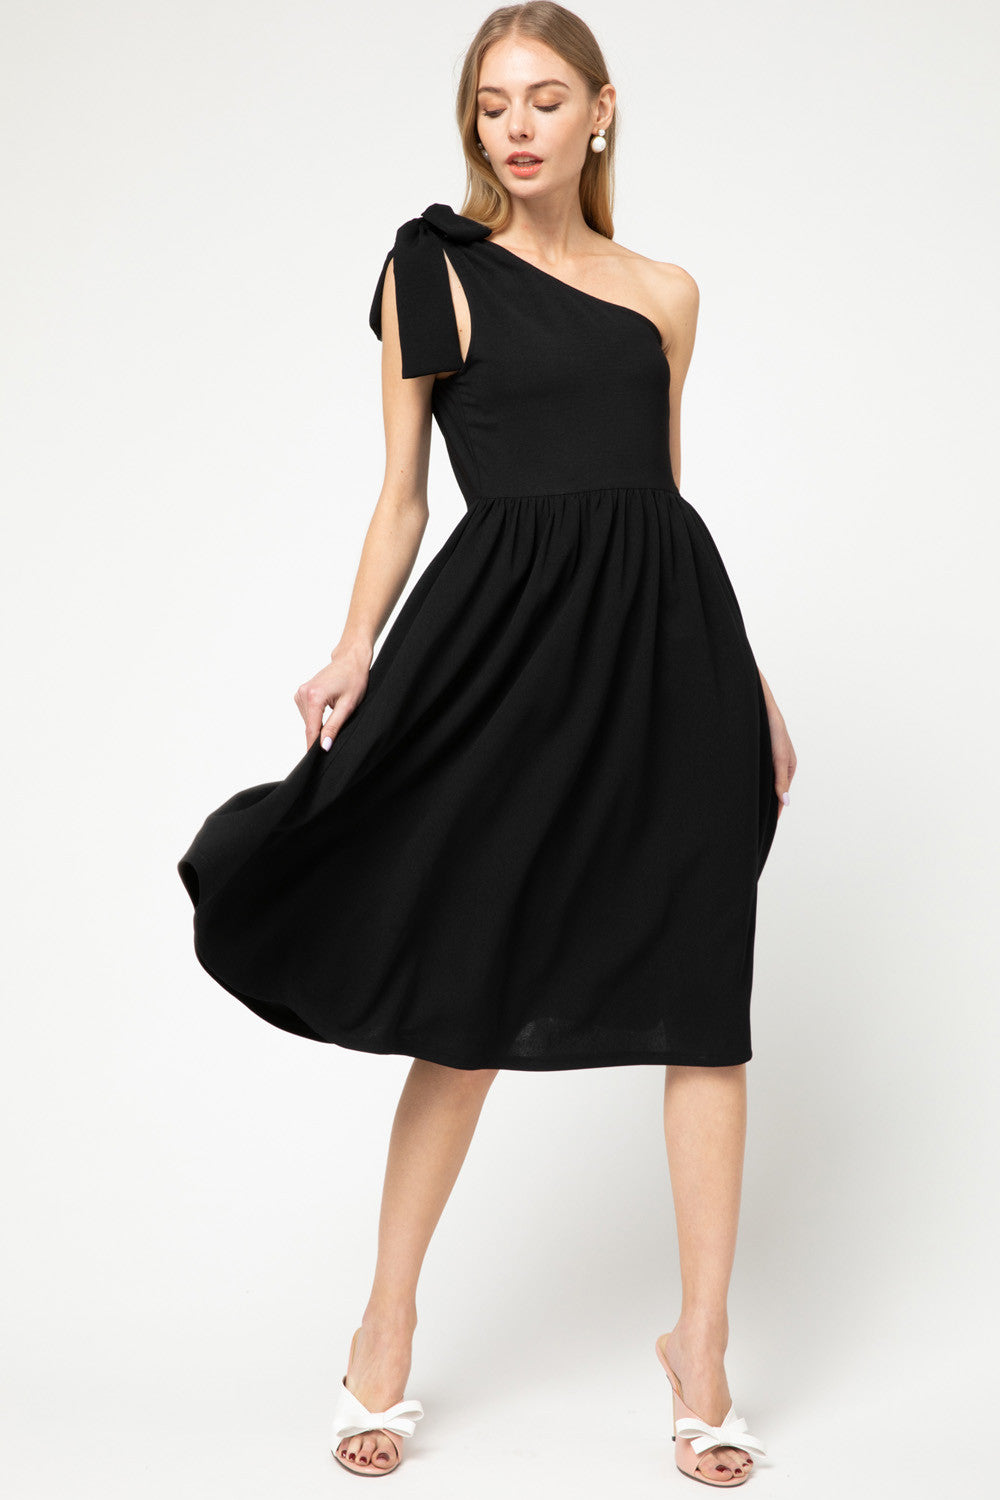 Solid one shoulder midi dress featuring self-tie detail on shoulder